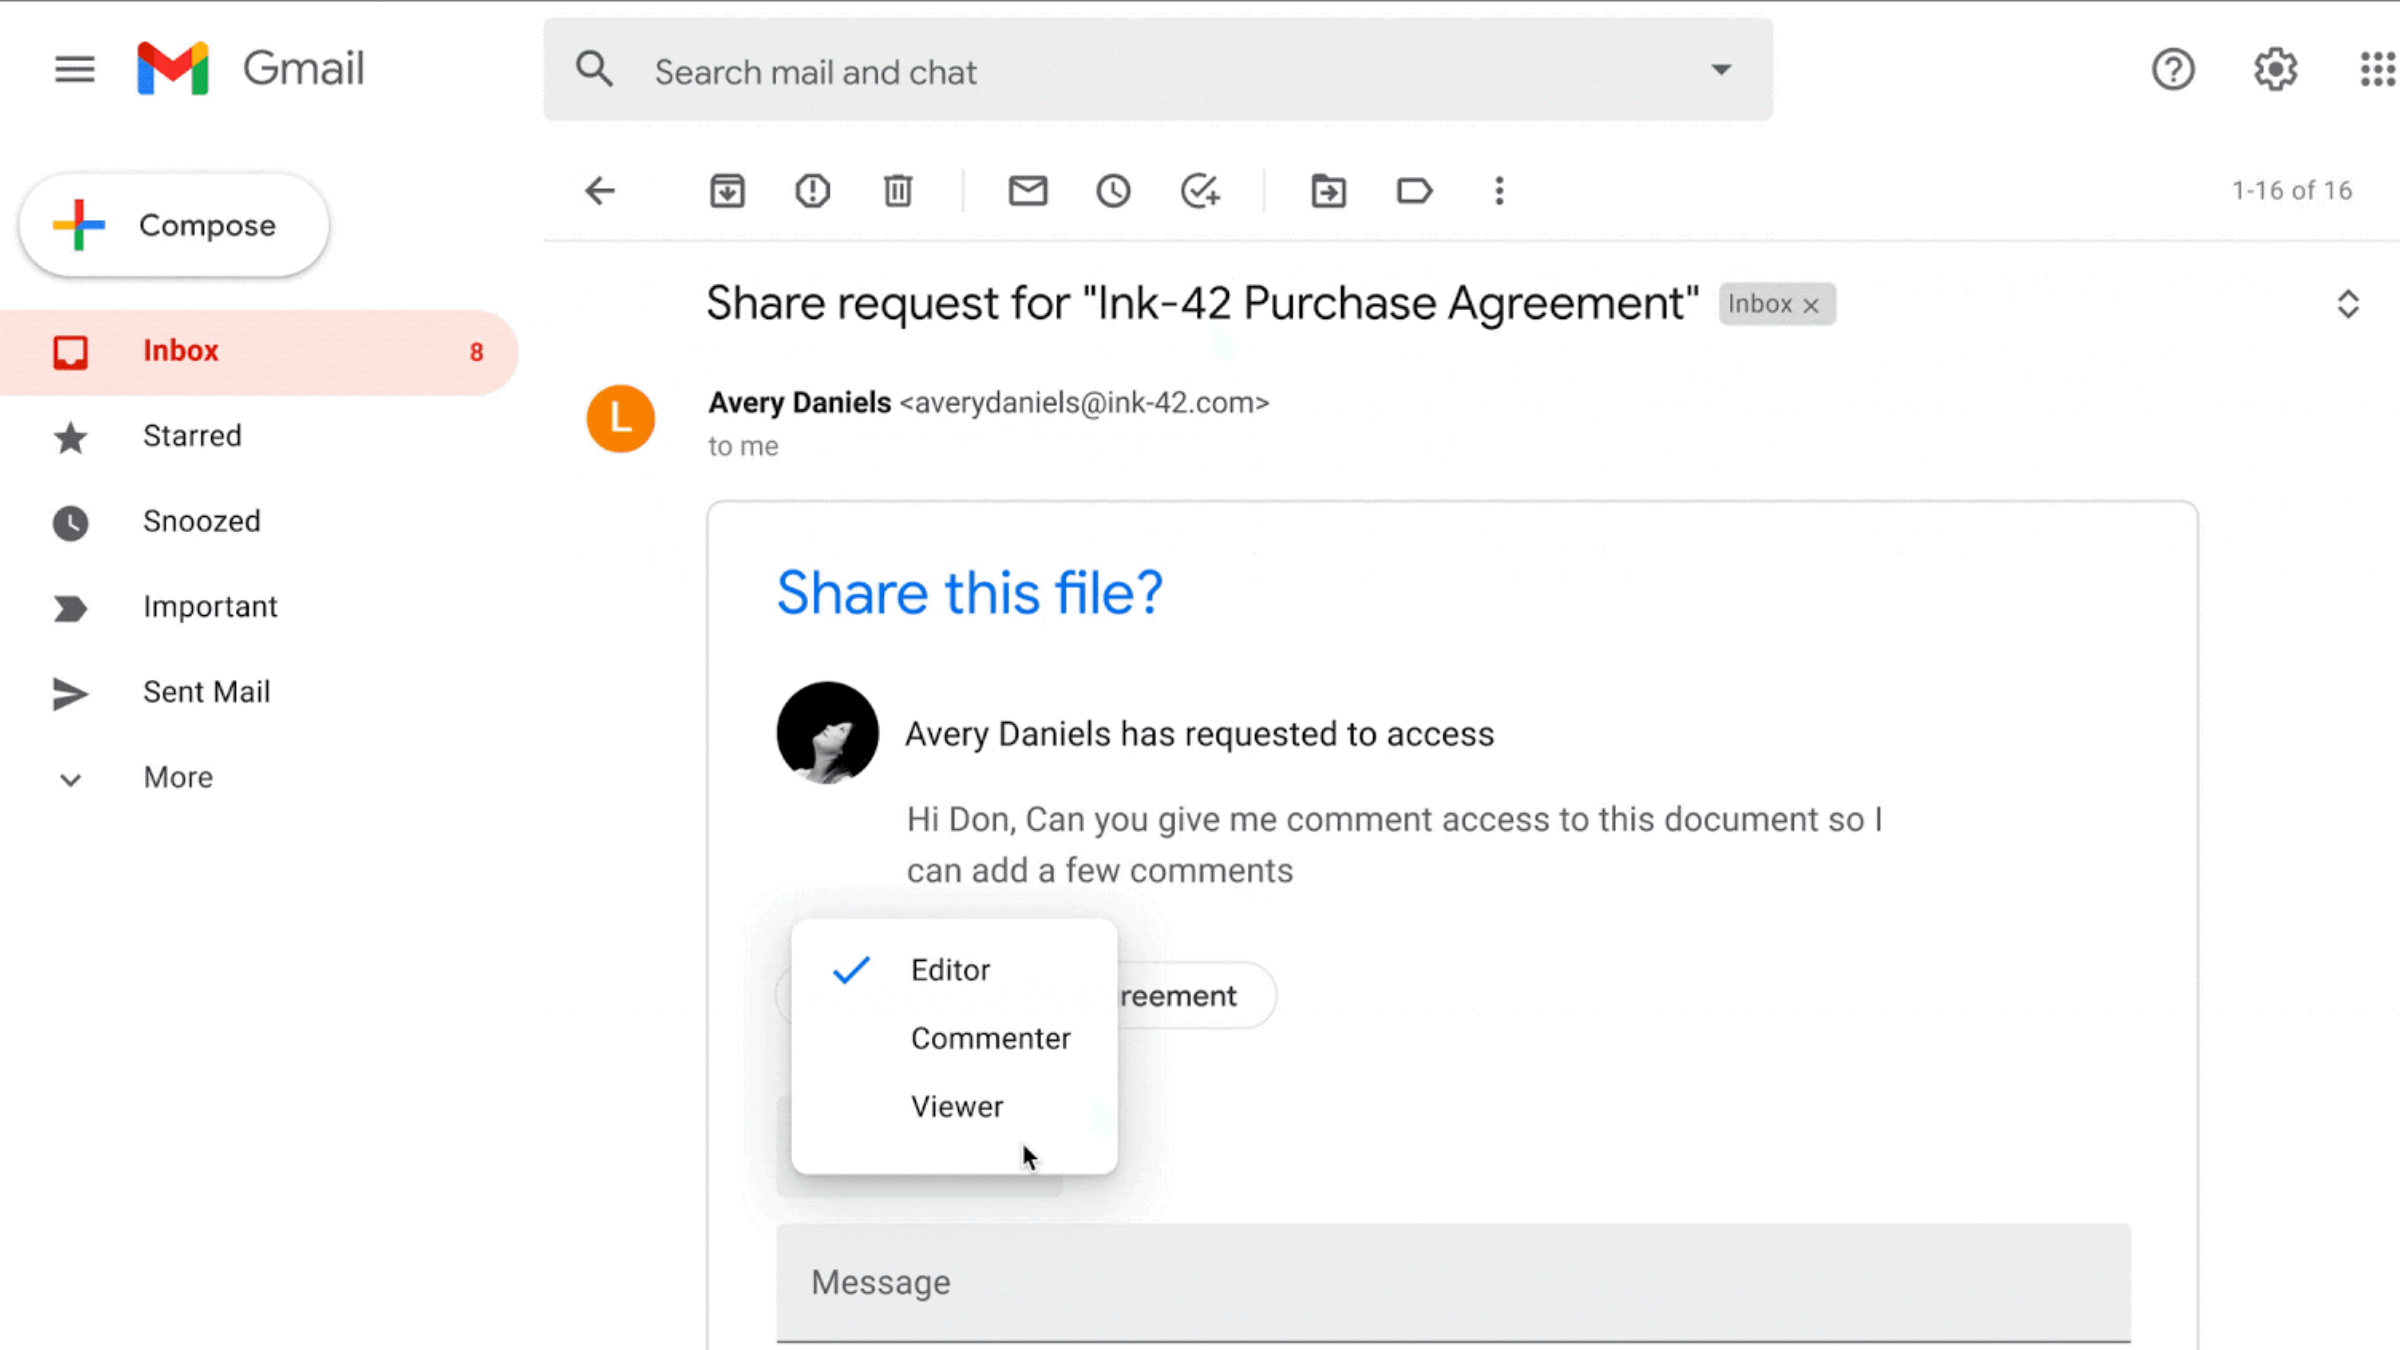 Google Drive using dynamic emails to let you grant file access directly in Gmail - 9to5Google